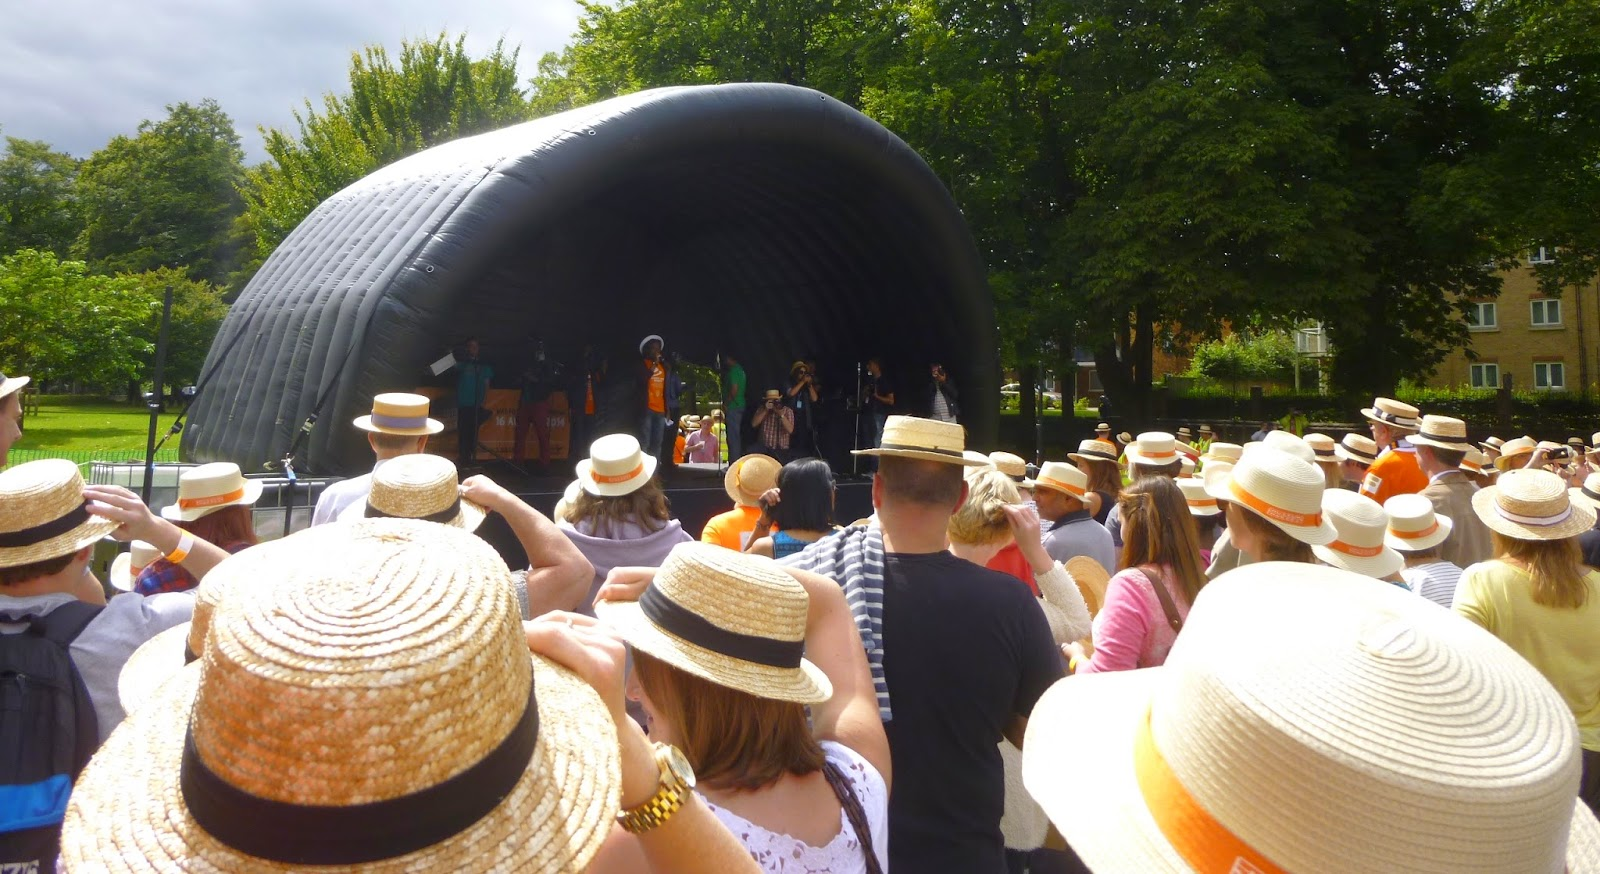 Guinness World Record attempt for the 'Largest Gathering of People Wearing Boater Hats'